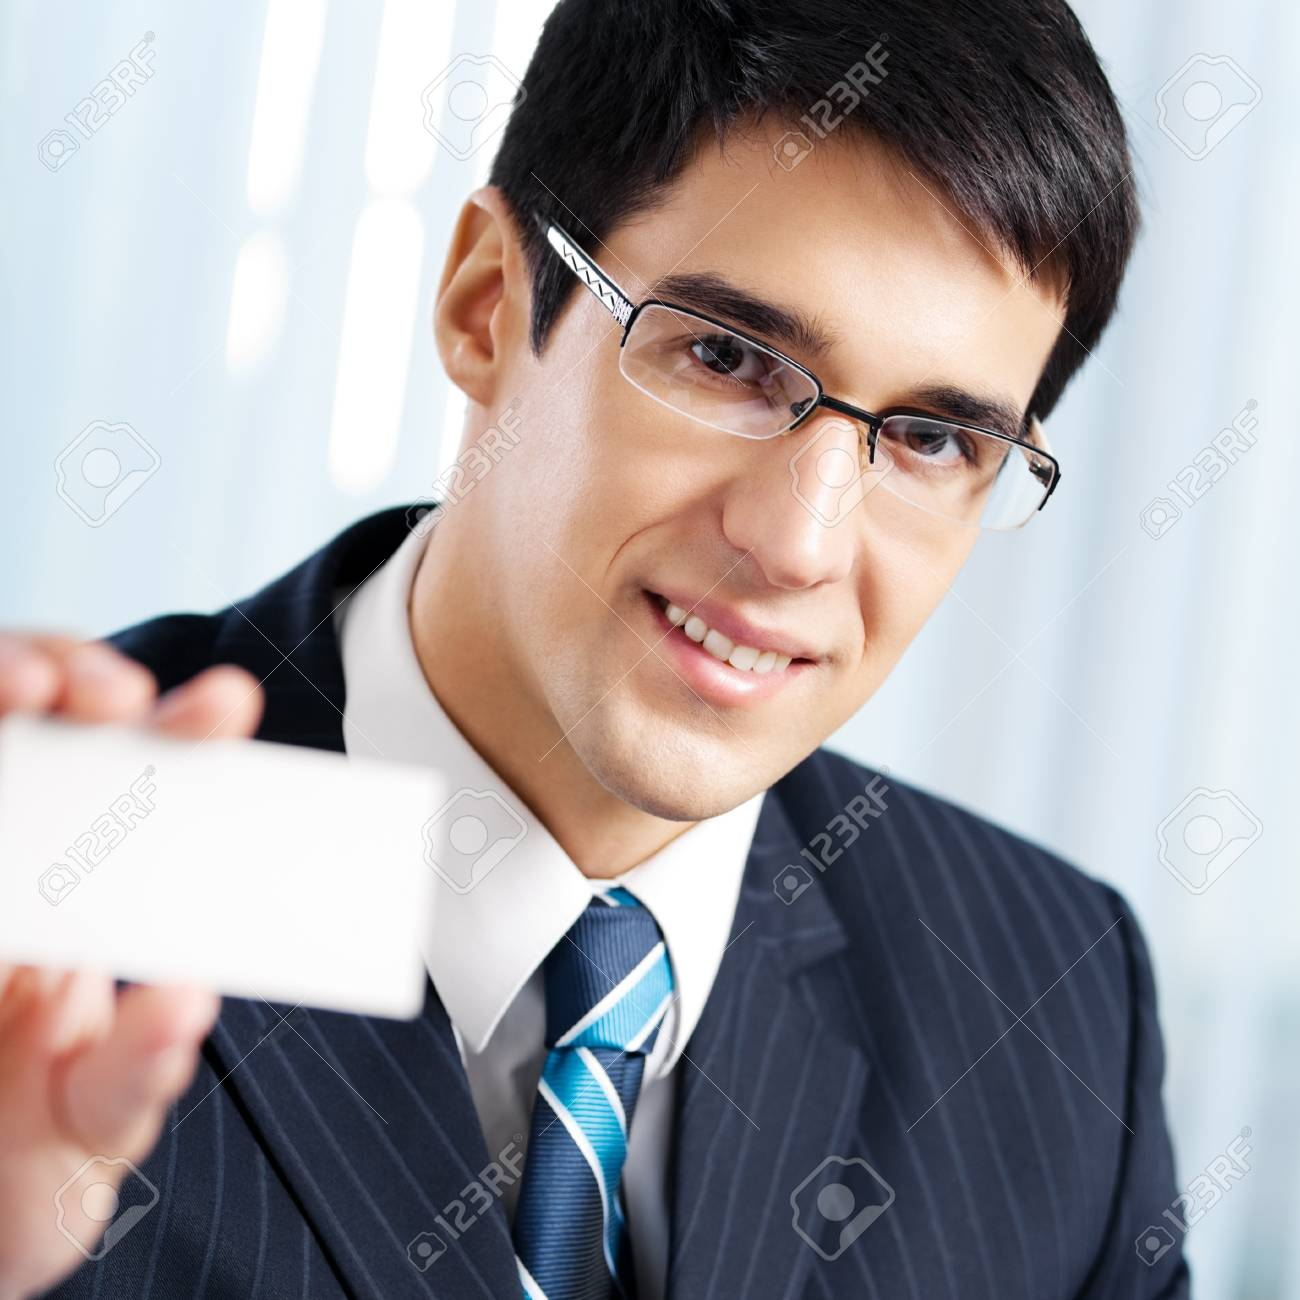 Smiling businessman giving business card, at office Stock Photo - 17154621